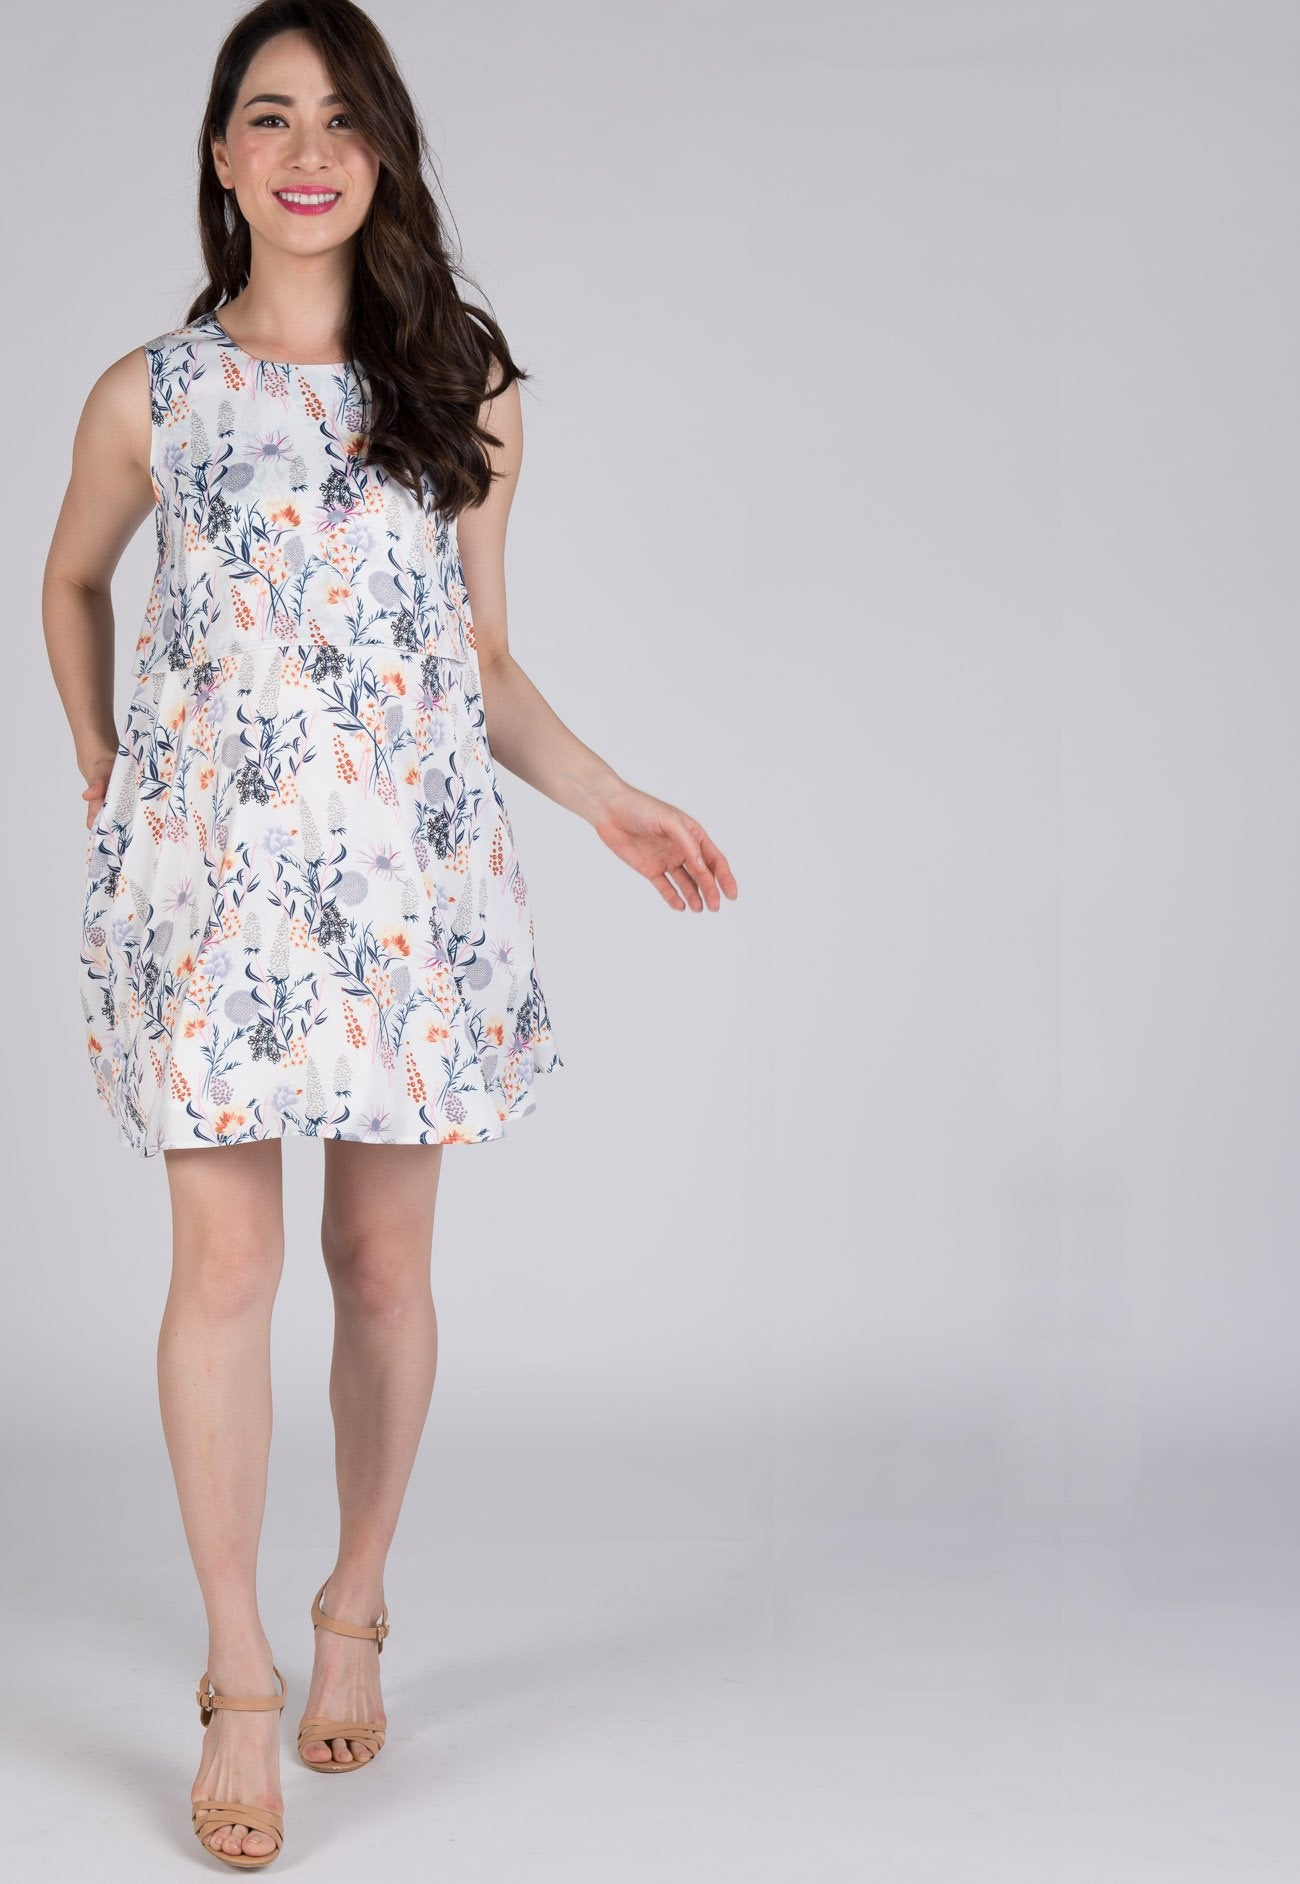 Mothercot Floral Prints Pocket Nursing Dress  by JumpEatCry - Maternity and nursing wear